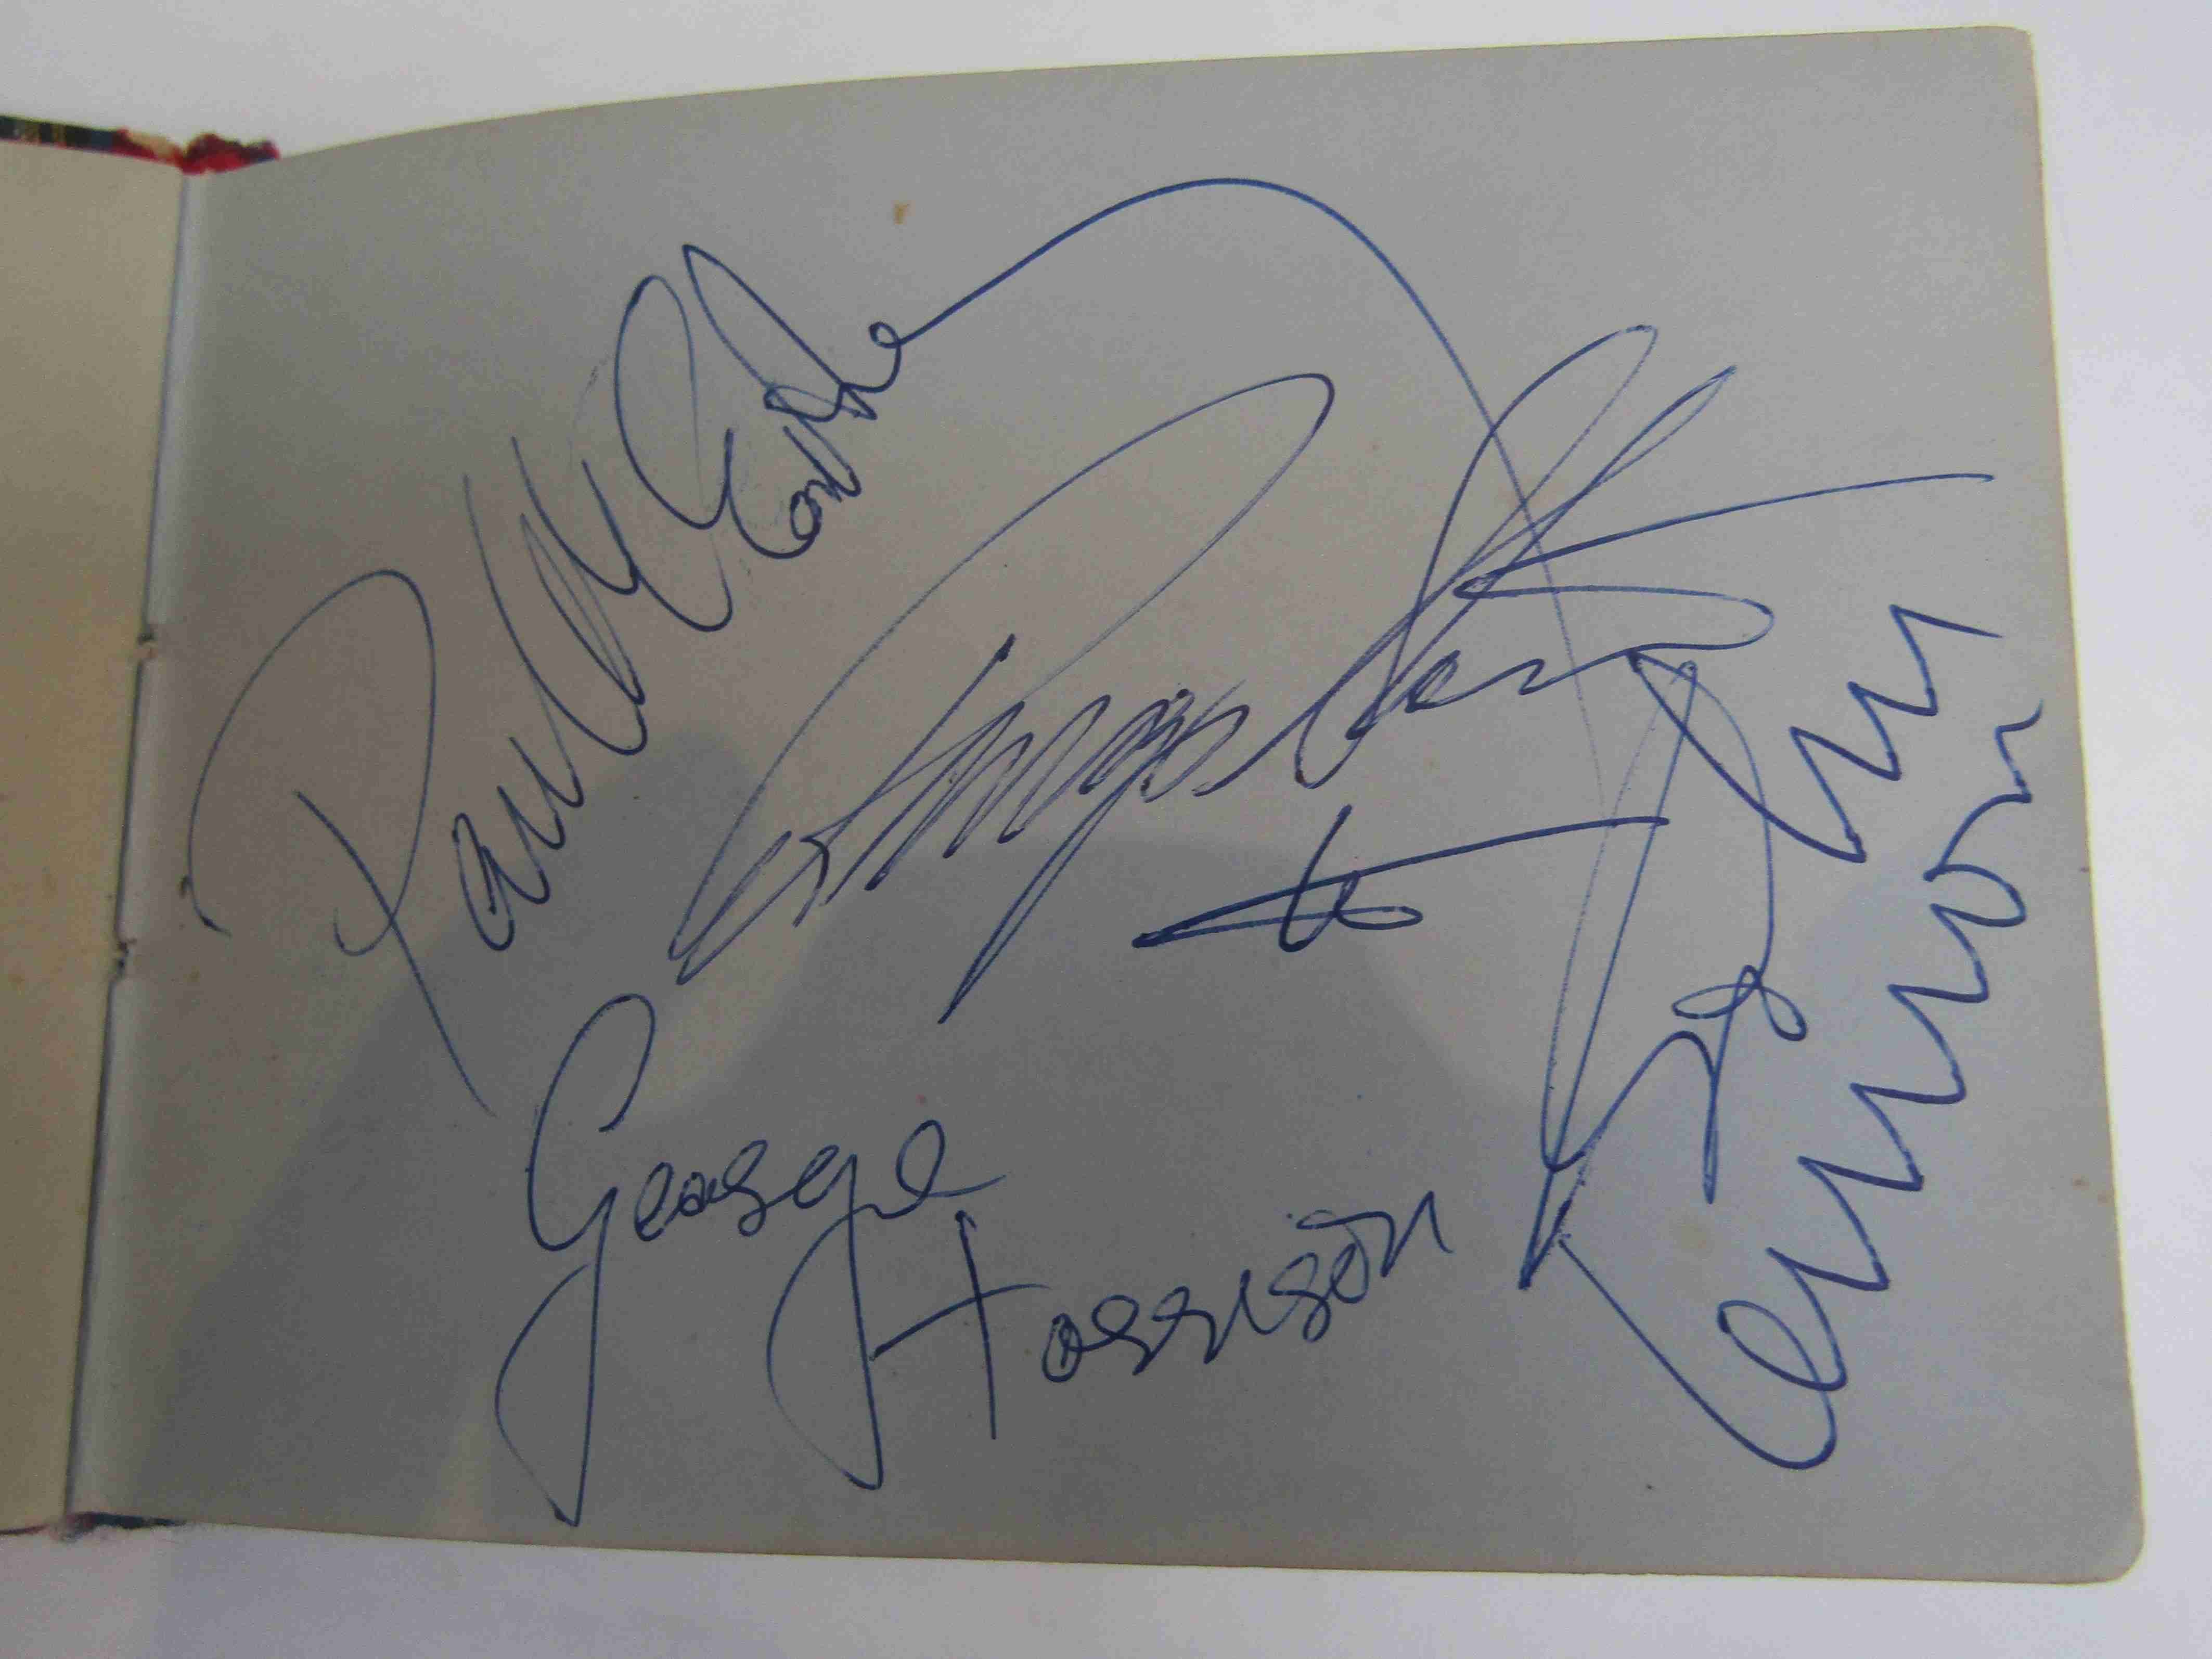 Two 1950s/60s autograph books containing autographs by Benny Hill, Honor Blackman, Barbara Shelley, - Image 2 of 34